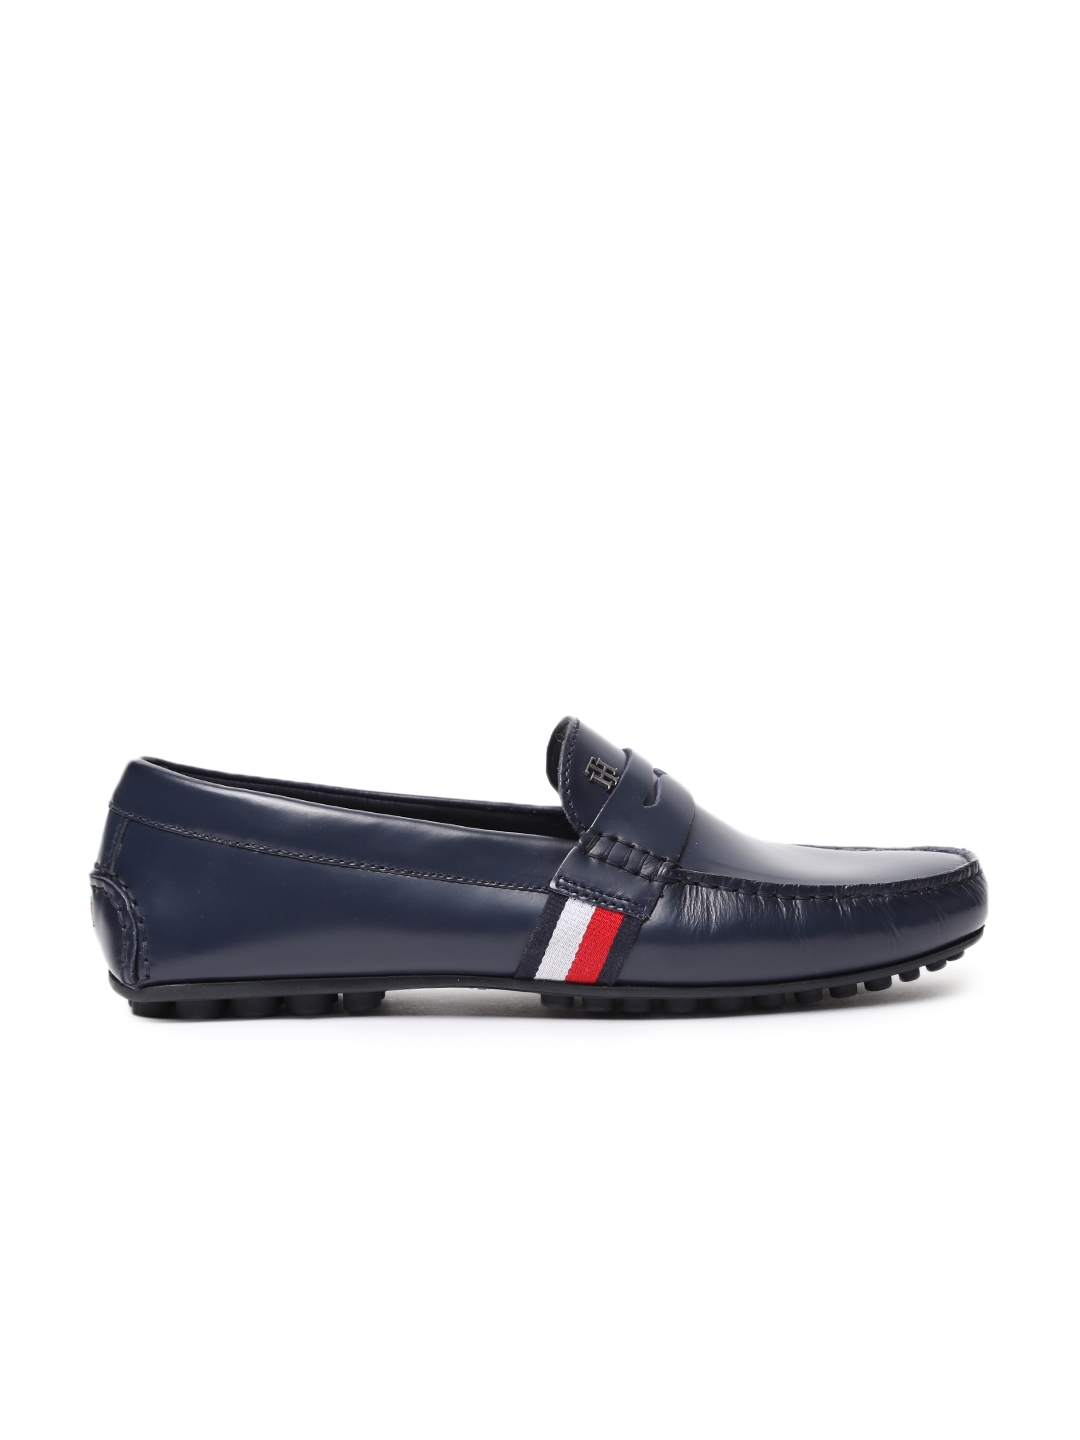 f7f1fba4f6b54 Buy Tommy Hilfiger Men Blue Loafers - Casual Shoes for Men 2003096 ...